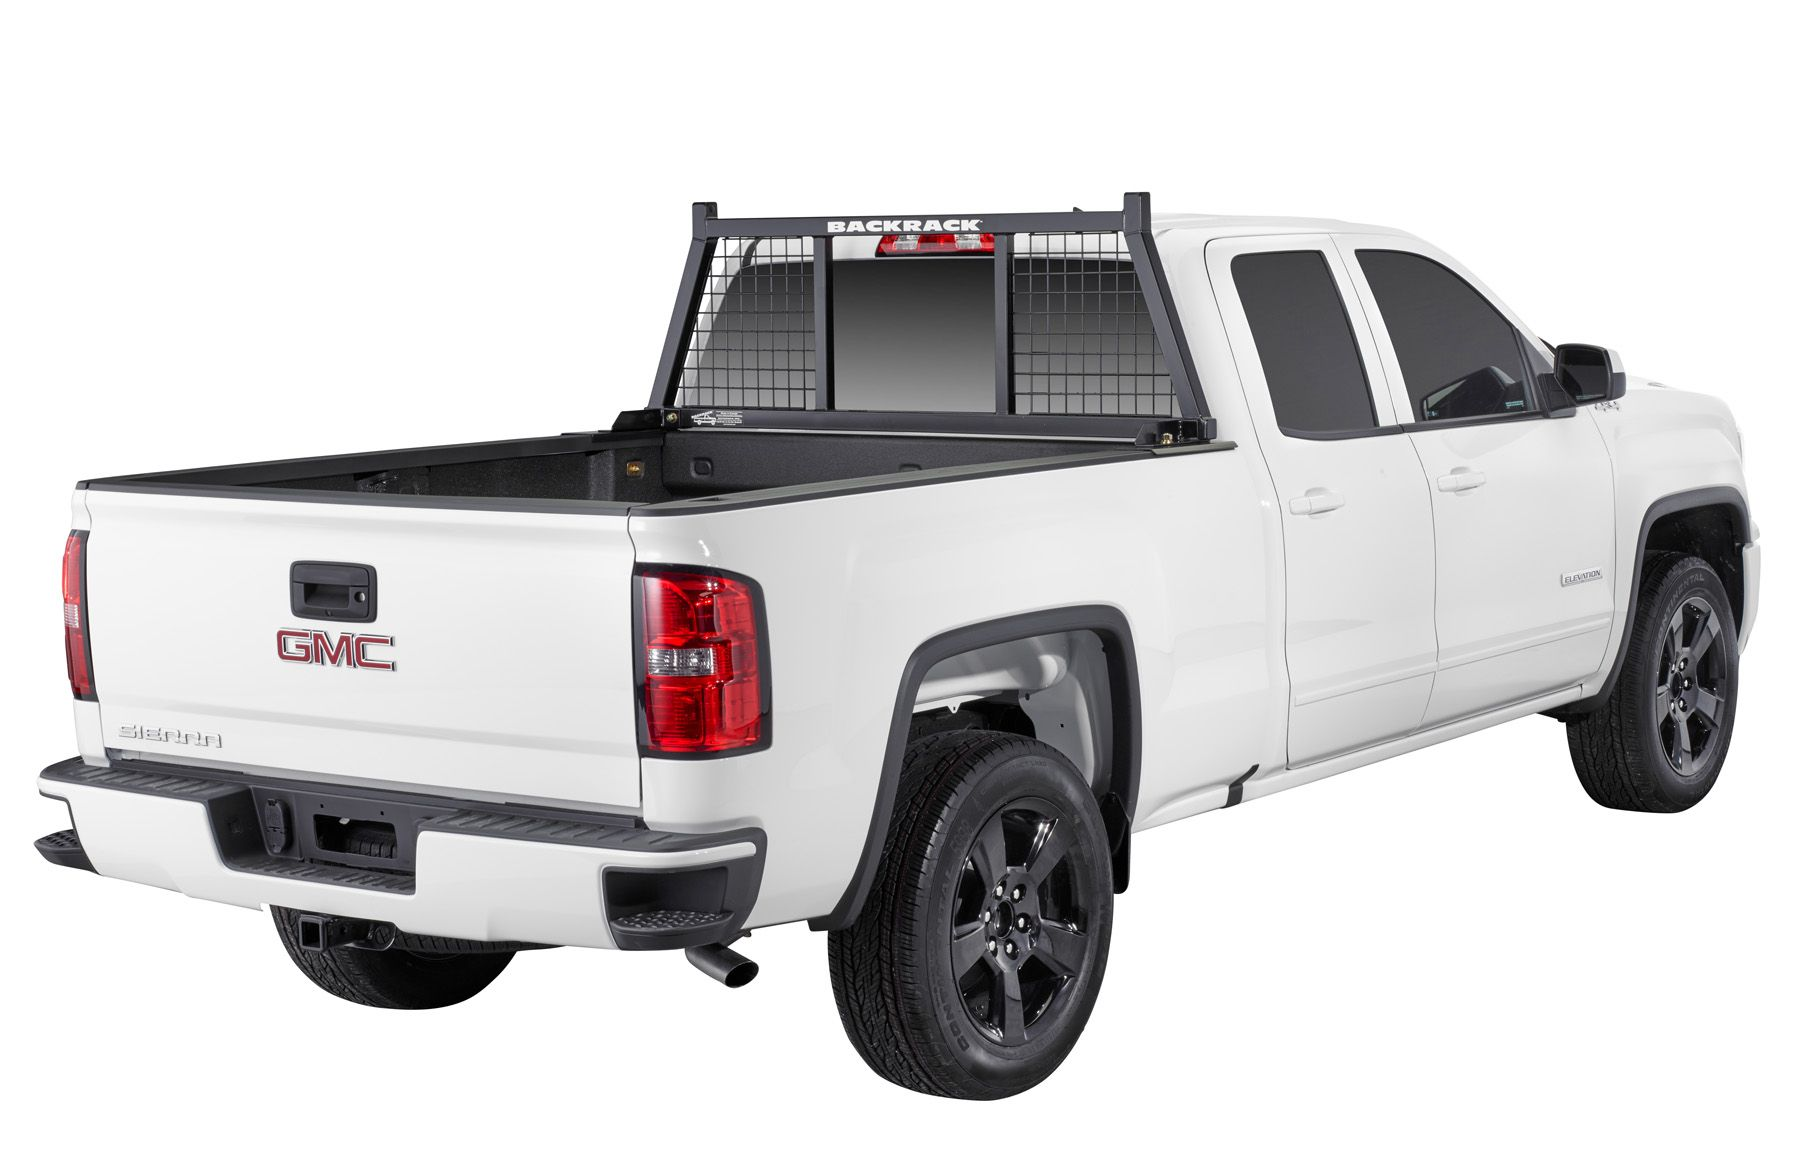 HALF SAFETY RACK BACKRACK™ Truck Accessories Cab Guard